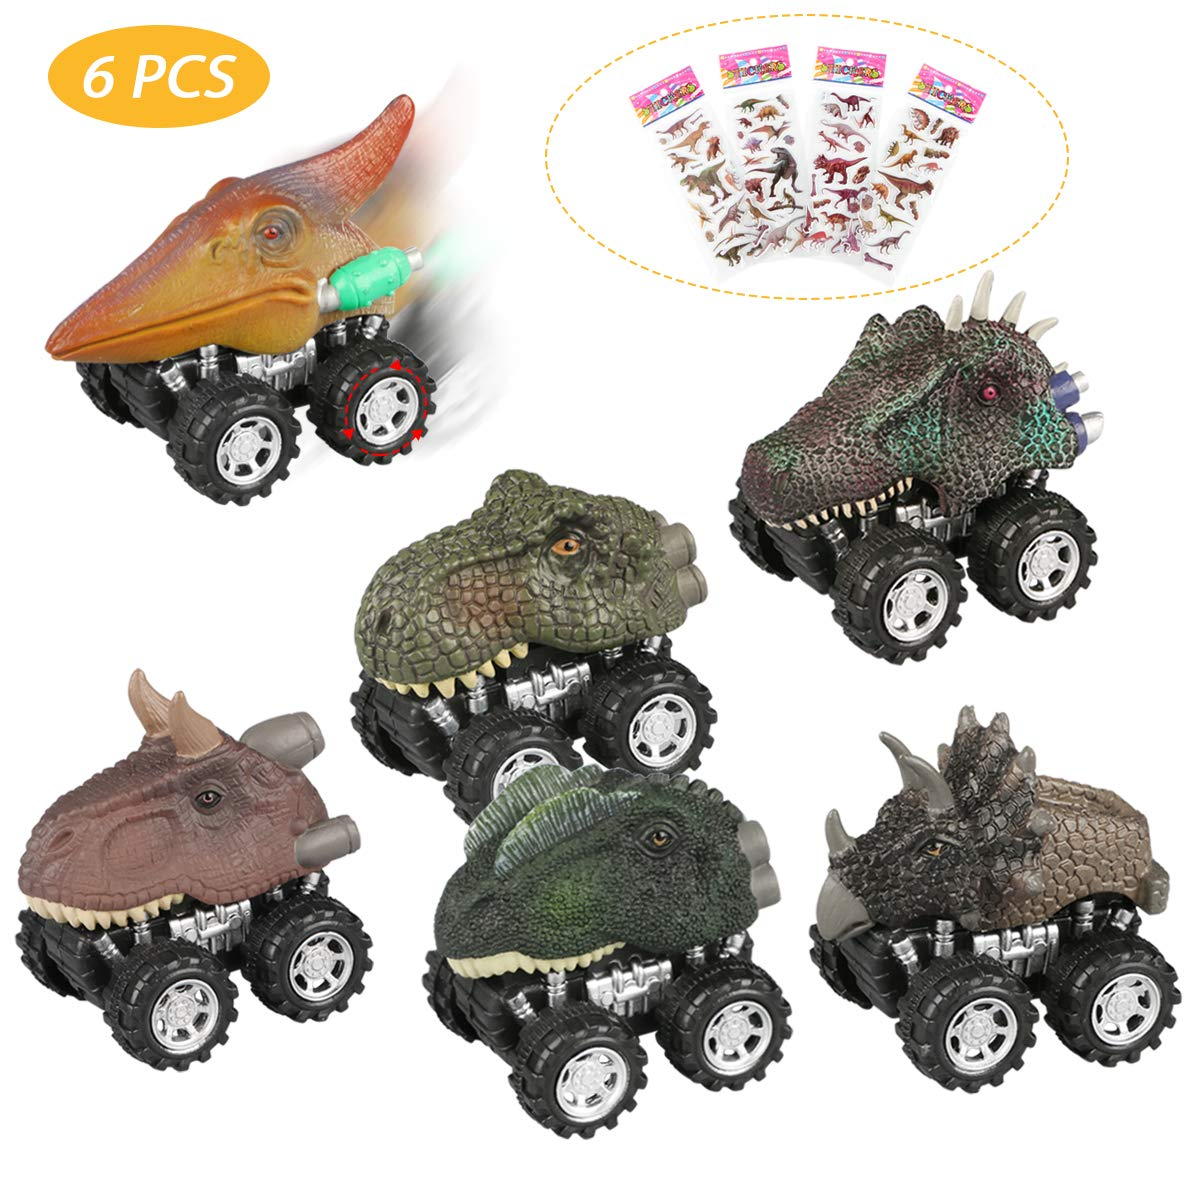 Estela Pull Back Dinosaur Cars, 6 Pcs Realistic Dinosaur Toy Cars with Big Wheel, Non-Toxic & Safe Plastic Pull Back Dinosaur Vehicle Set Bonus with Dinosaur Stickers, Creative Gift for Kids